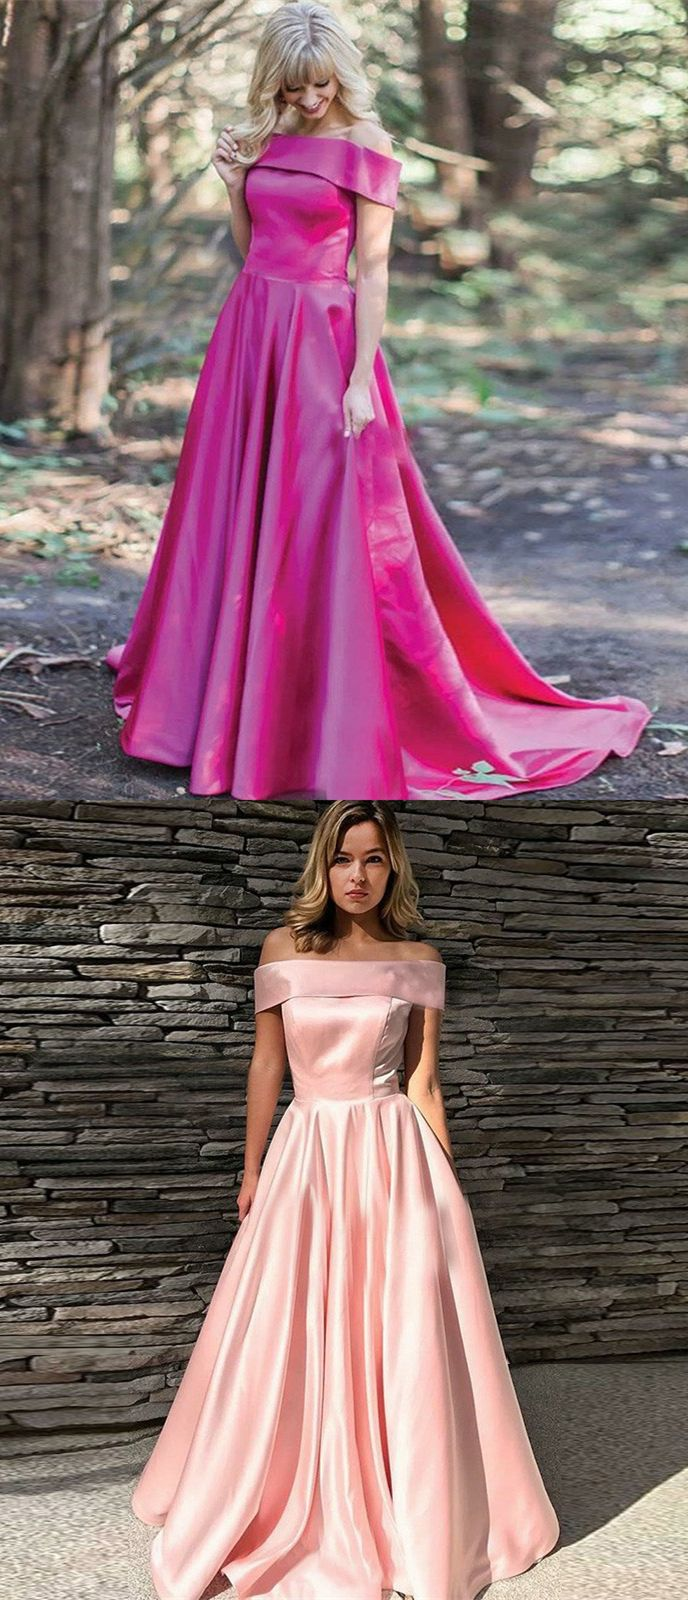 af08a9979e A-Line Off-the-Shoulder Sweep Train Pink Satin Prom Dress, modest pink off  the shoulder long prom dresses, unique fuchsia swing evening dresse with  pleats ...